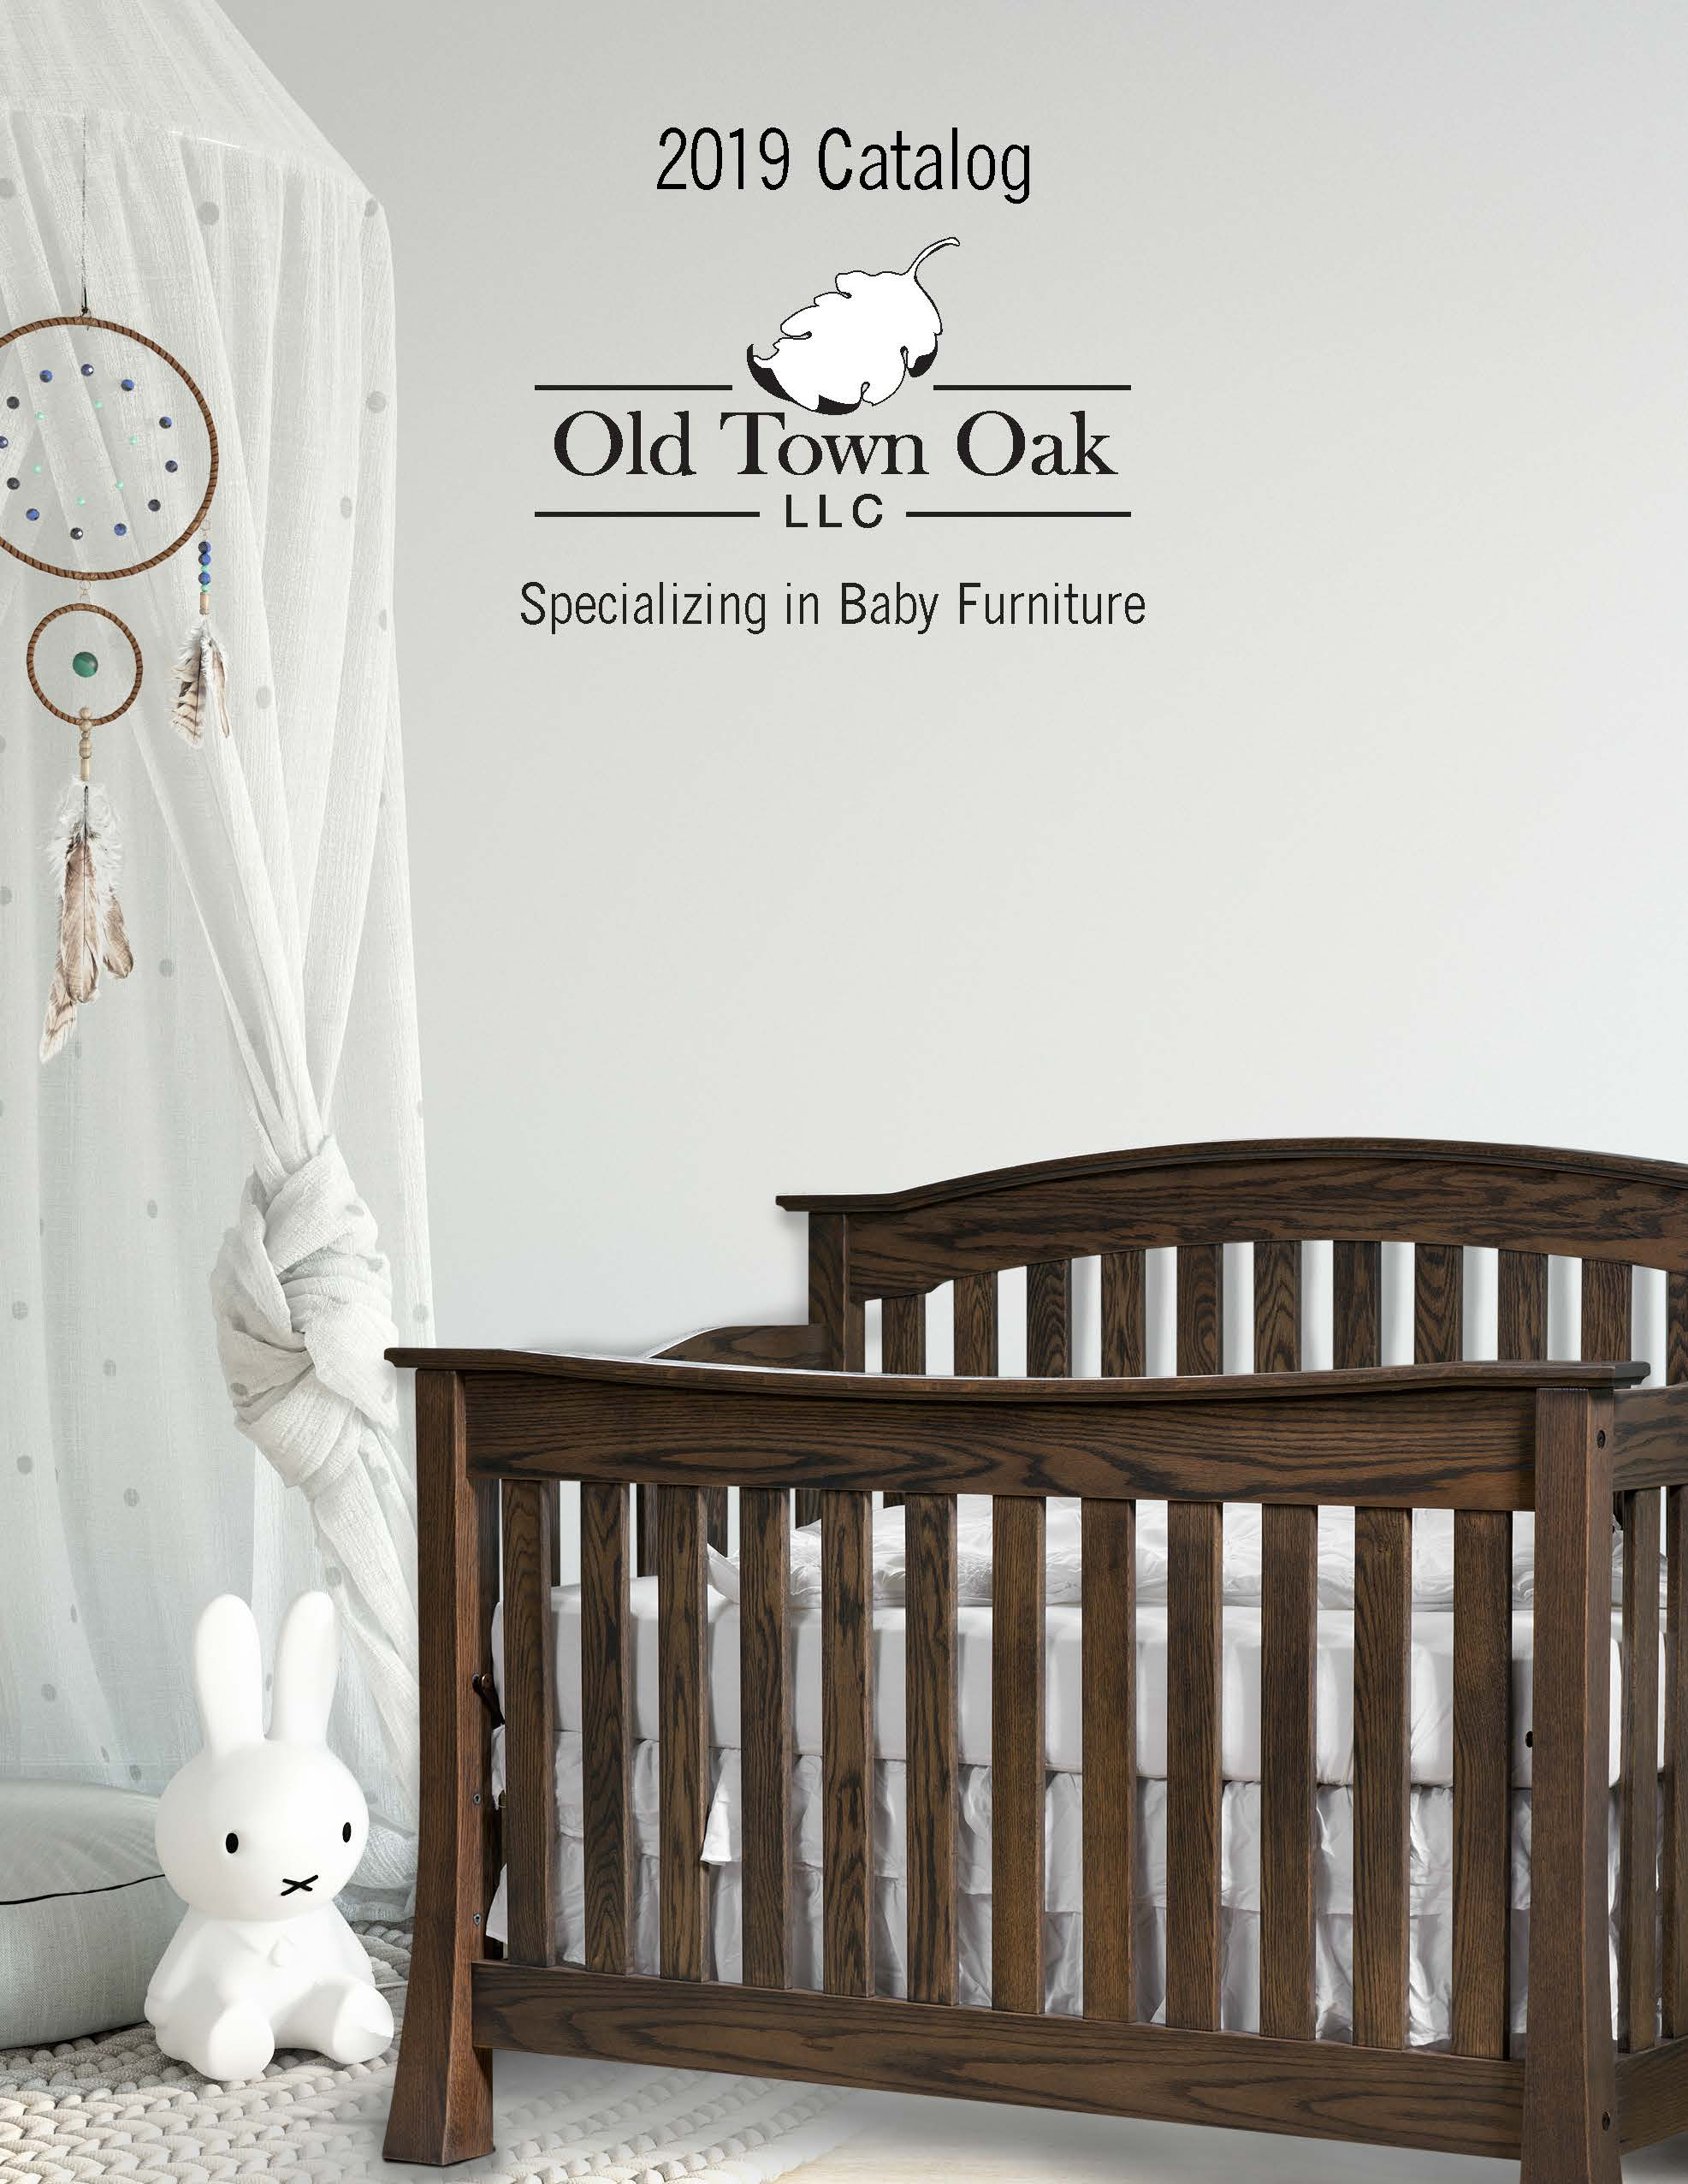 2019 Old Town Oak – Baby Furniture Catalog - E&G Amish Furniture